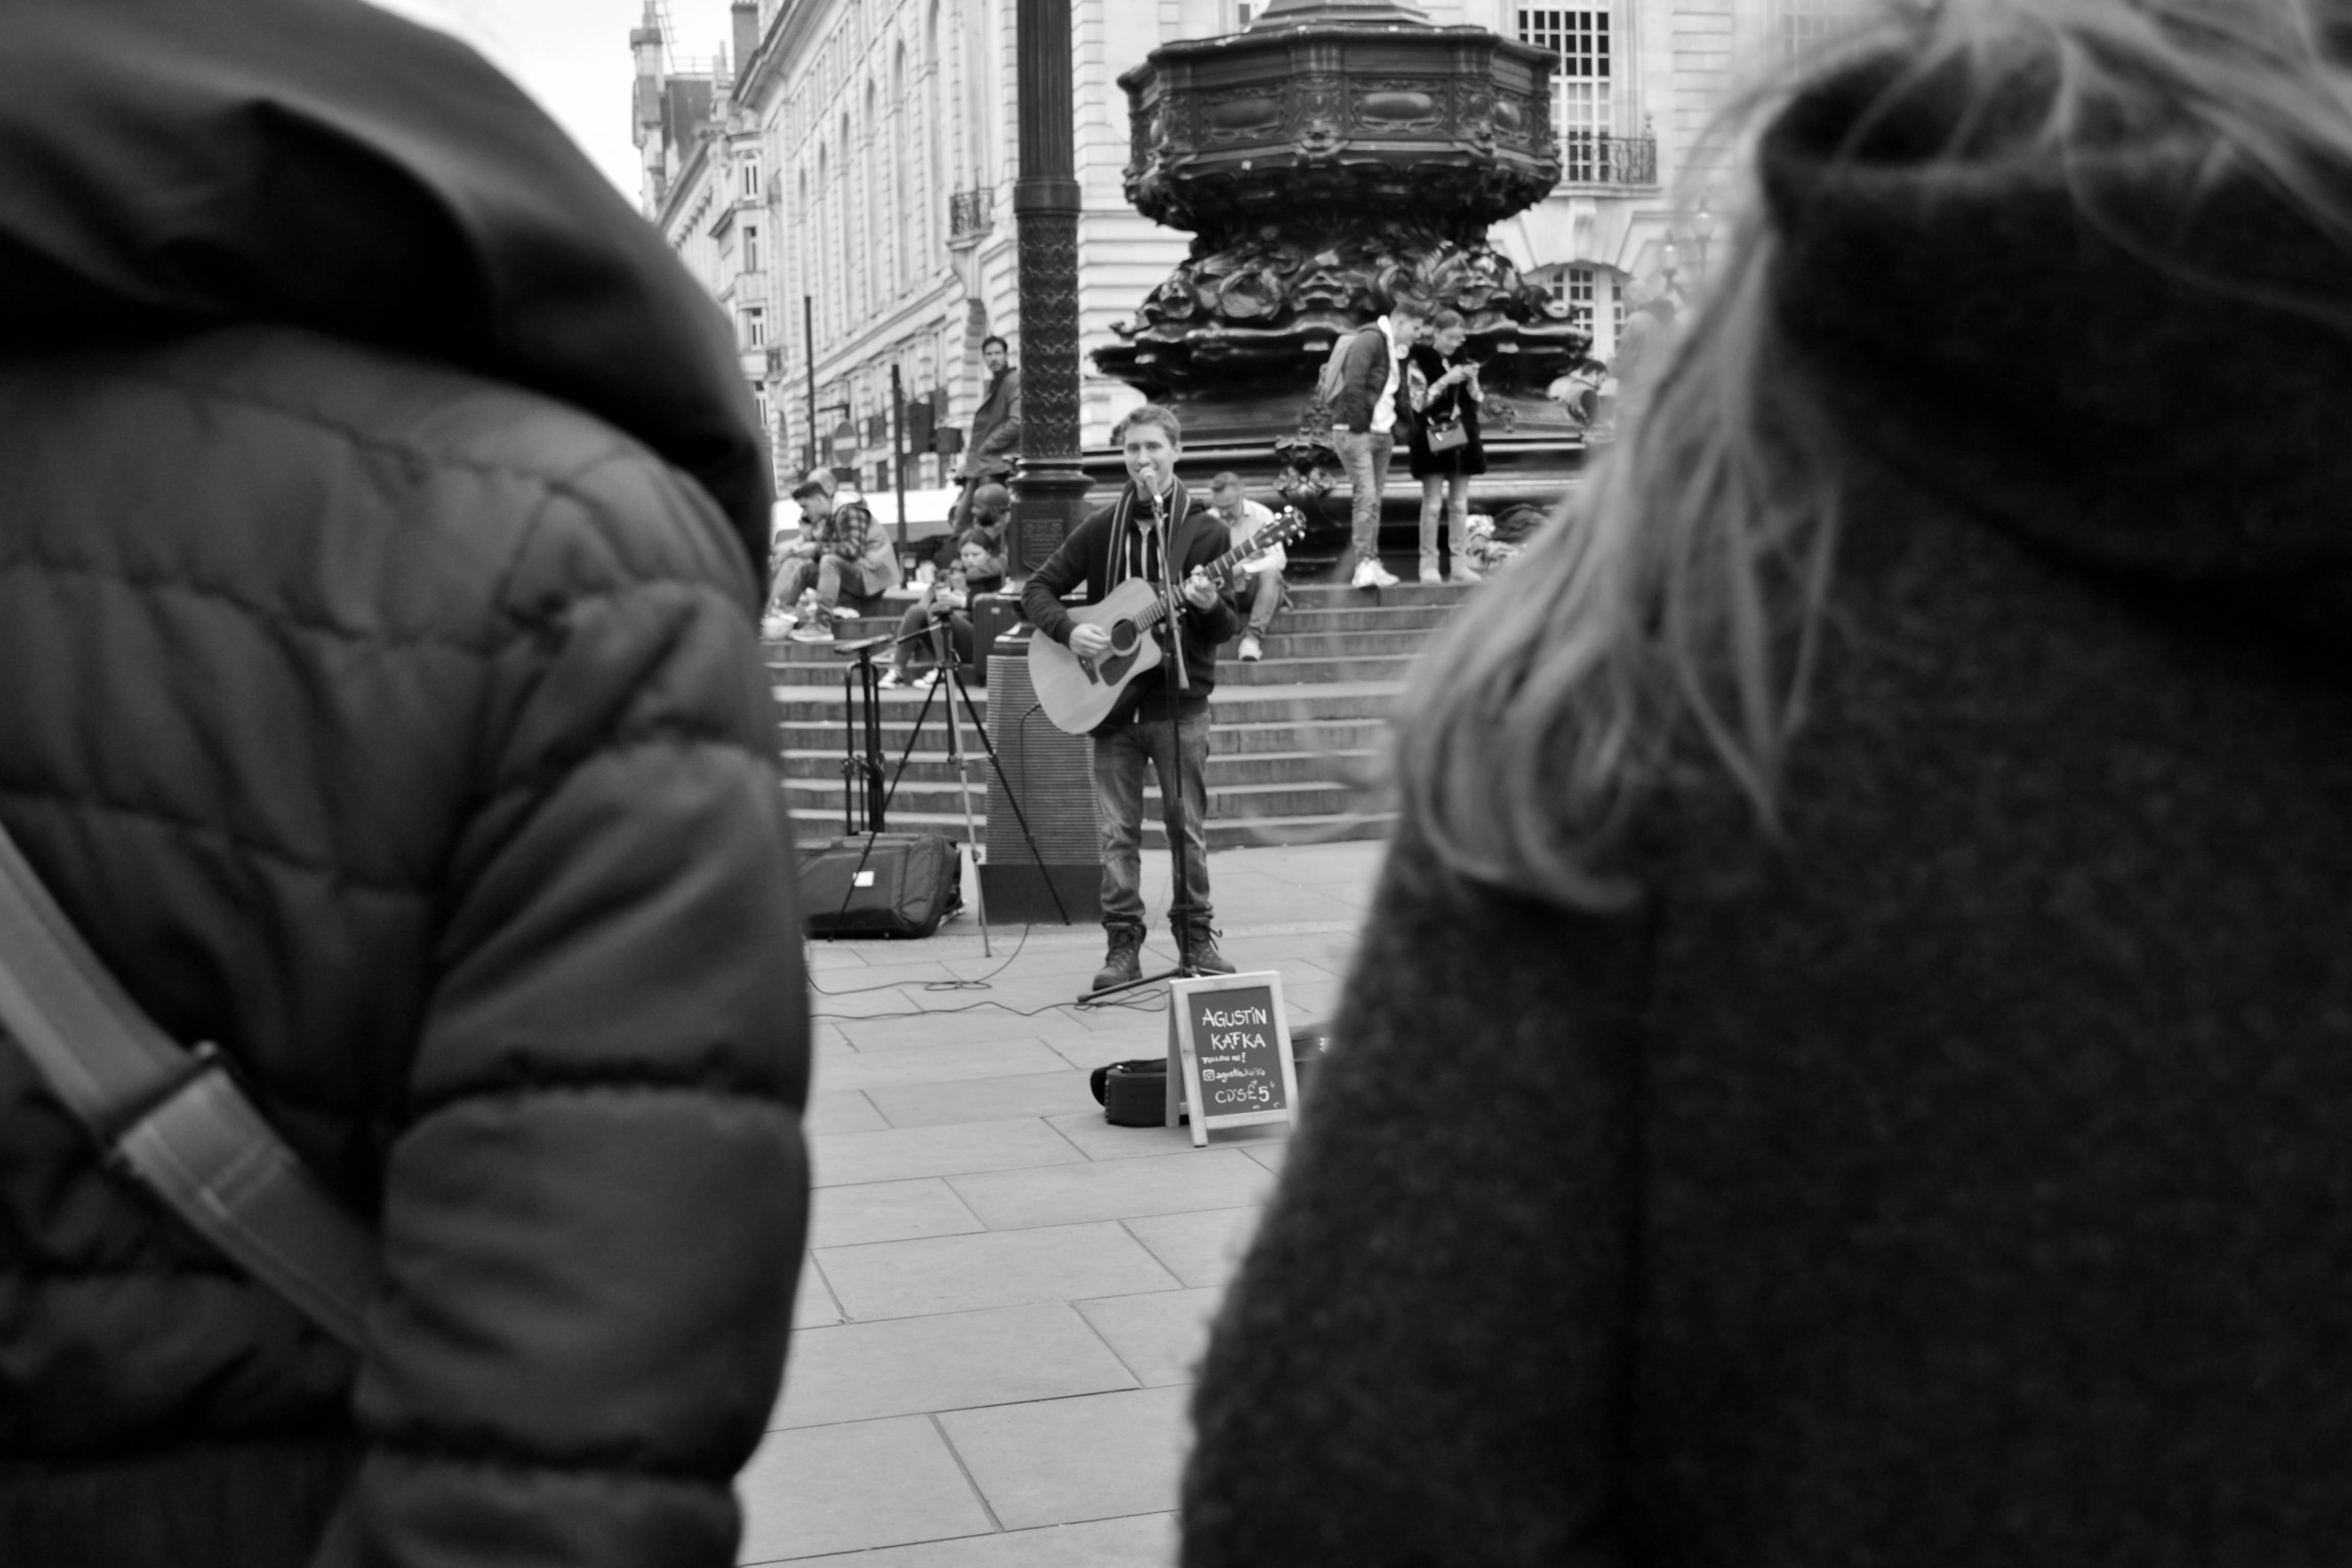 view of people watching the busker